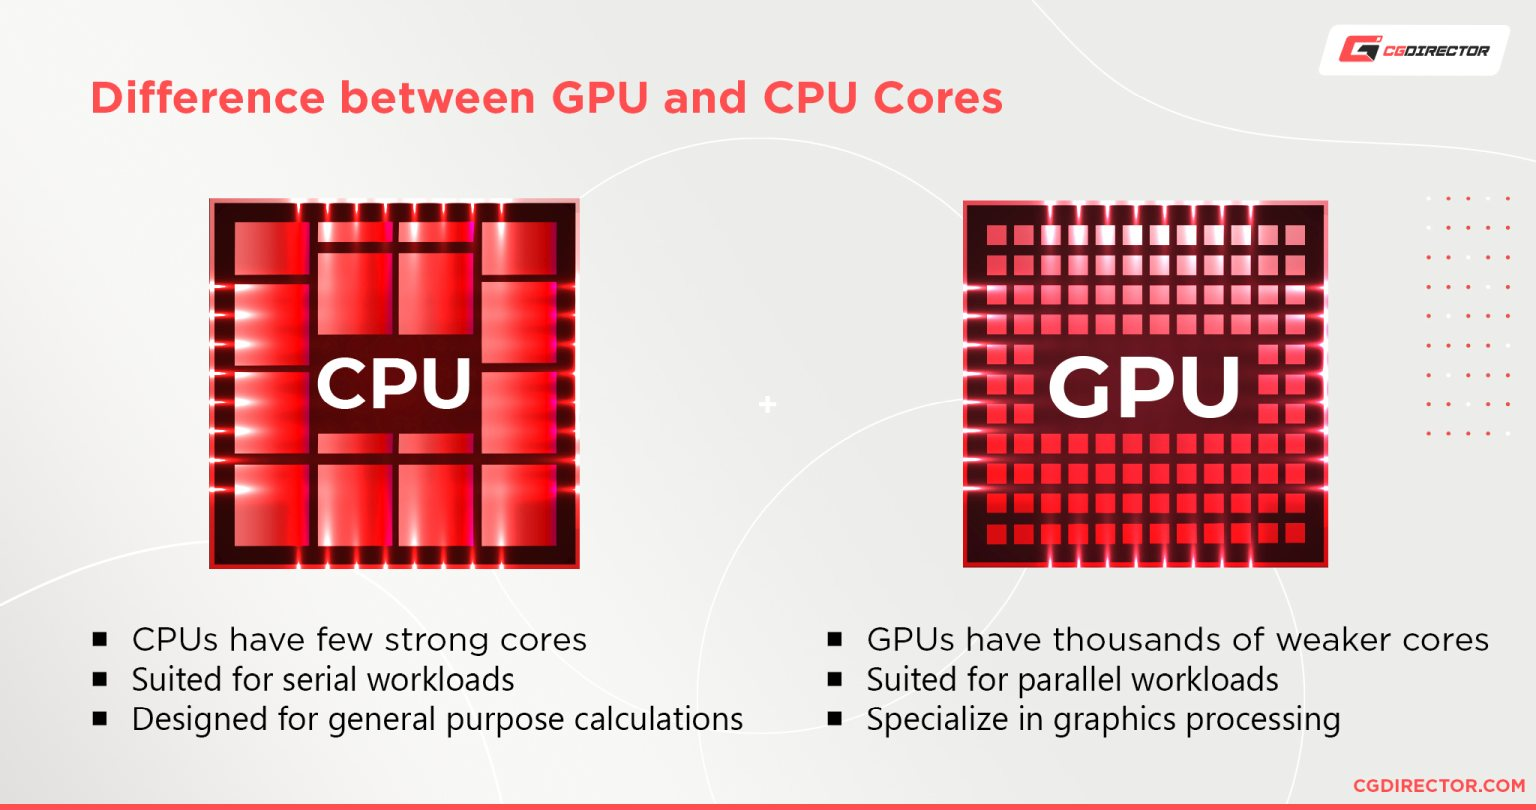 Differences between GPU and CPU cores